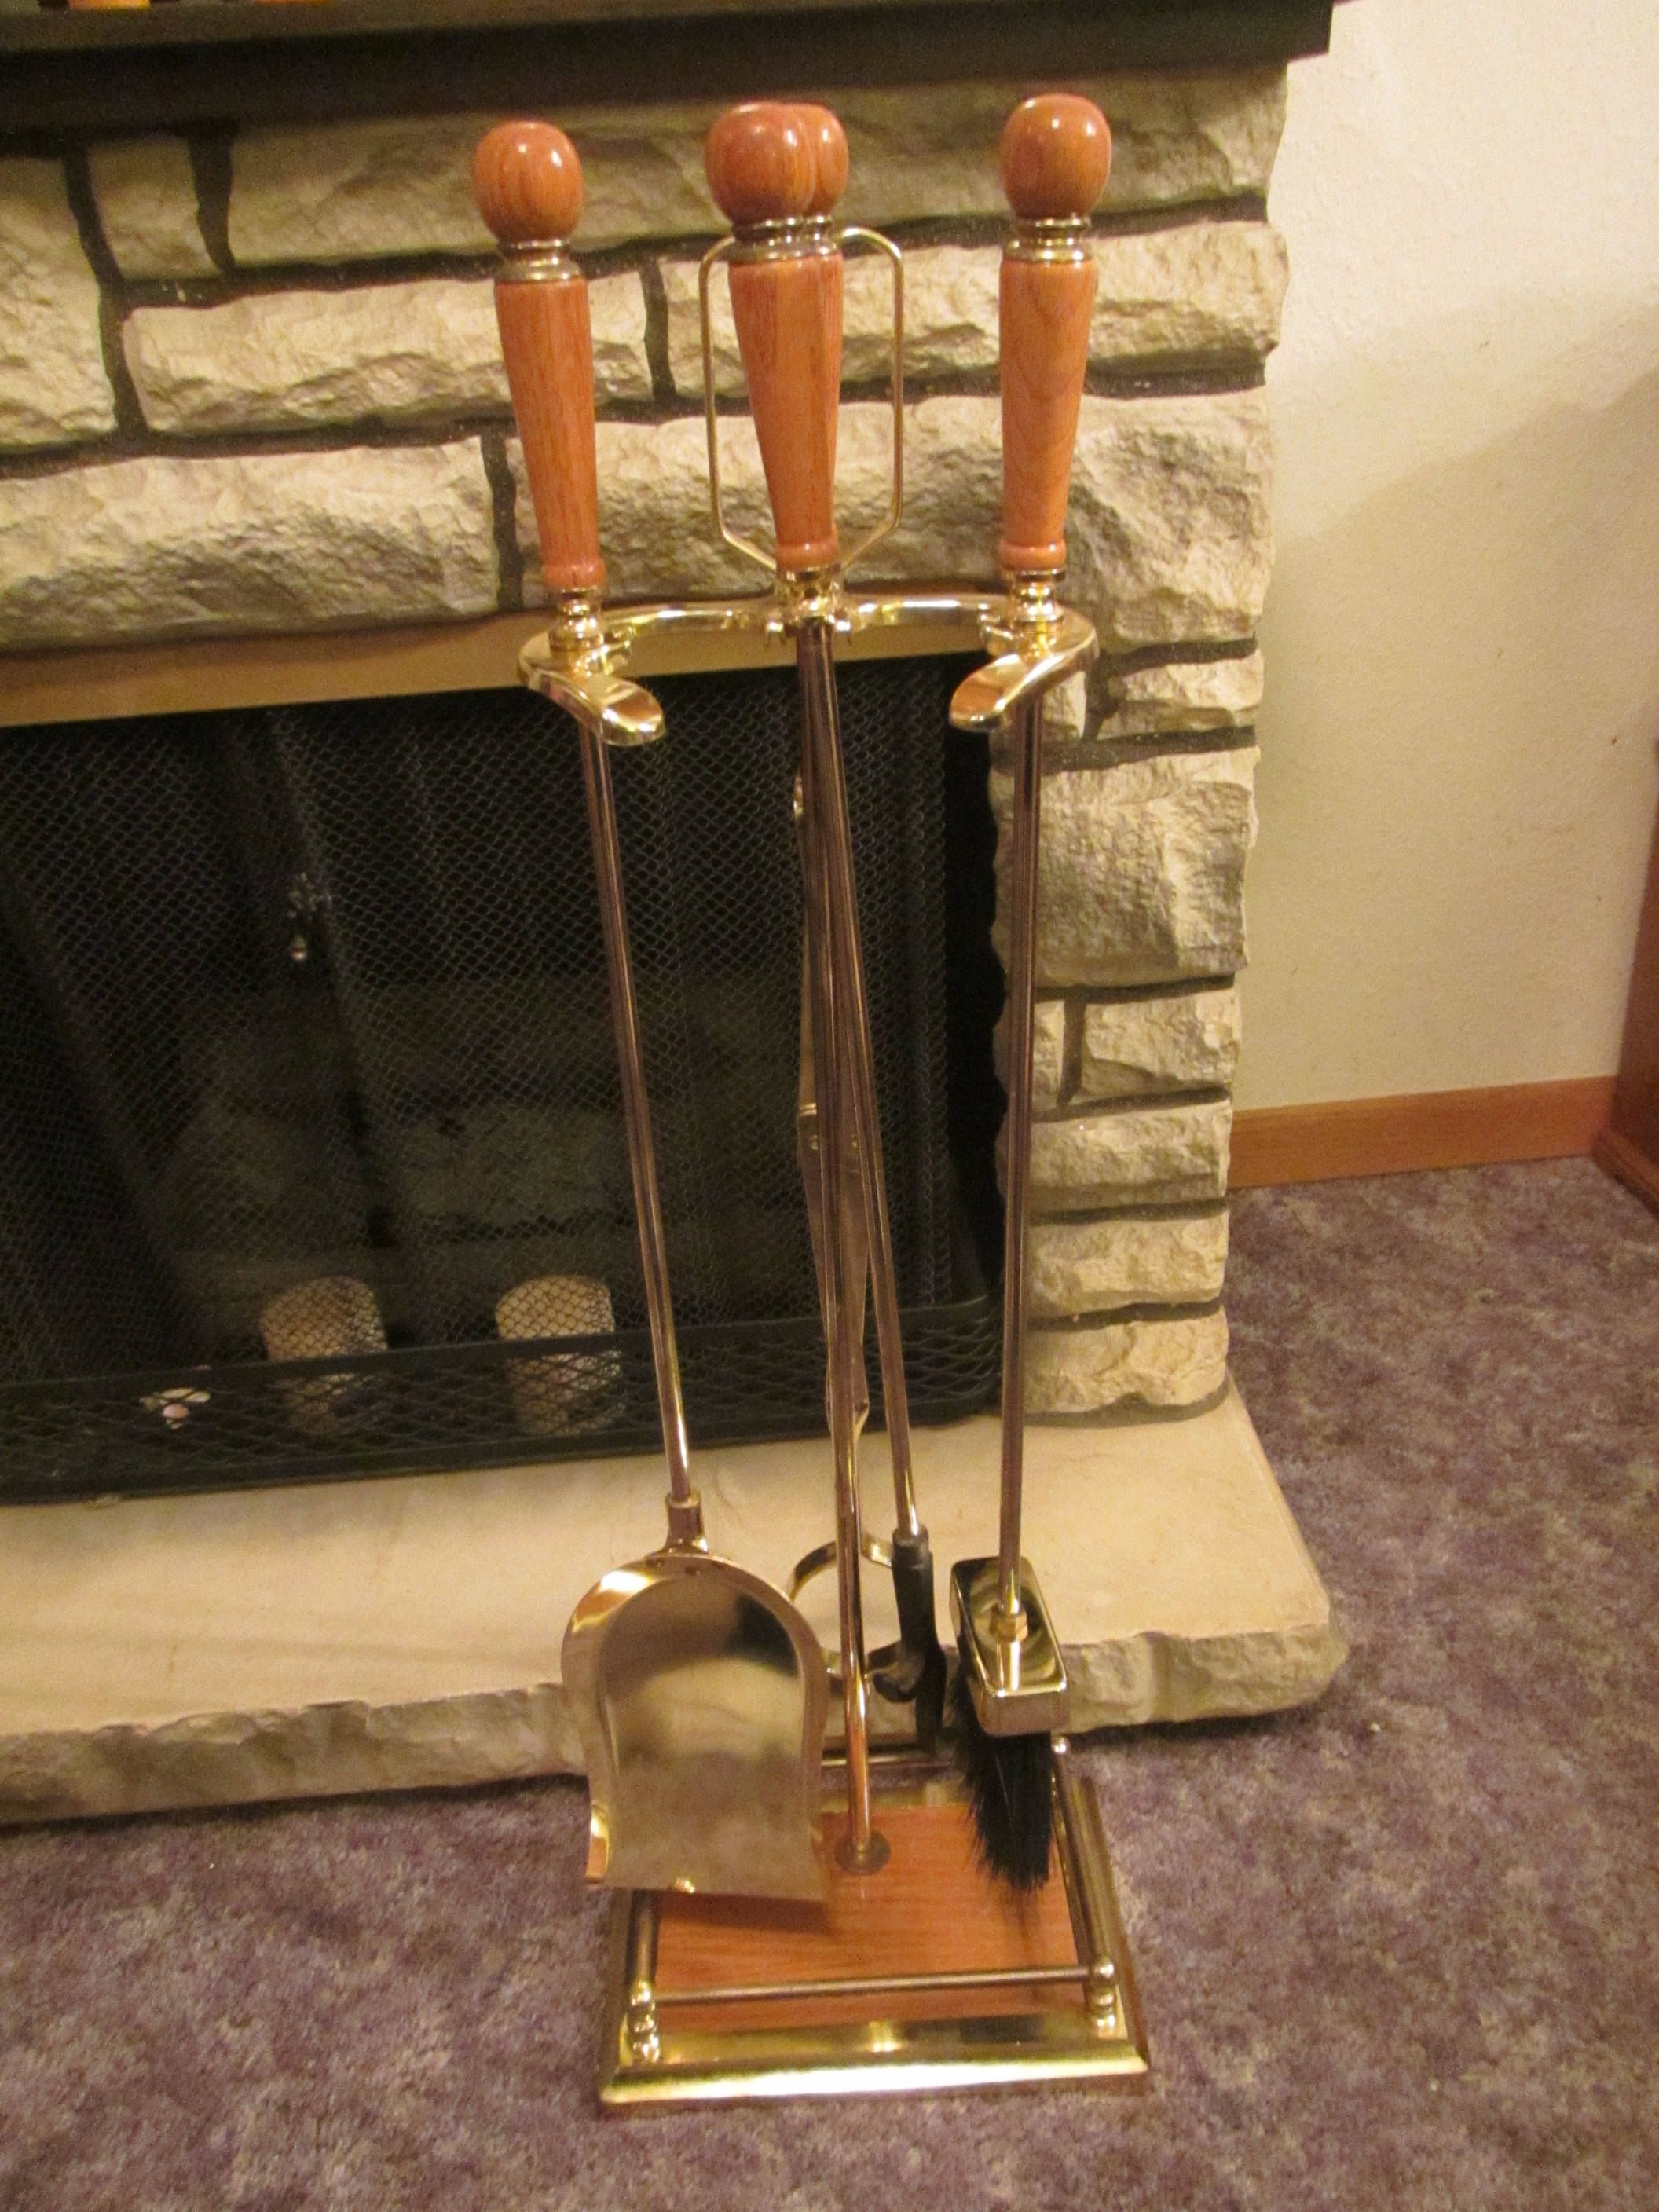 Fireplace Tool Set Brass Shovel Brush Tongs And Poker In Stand